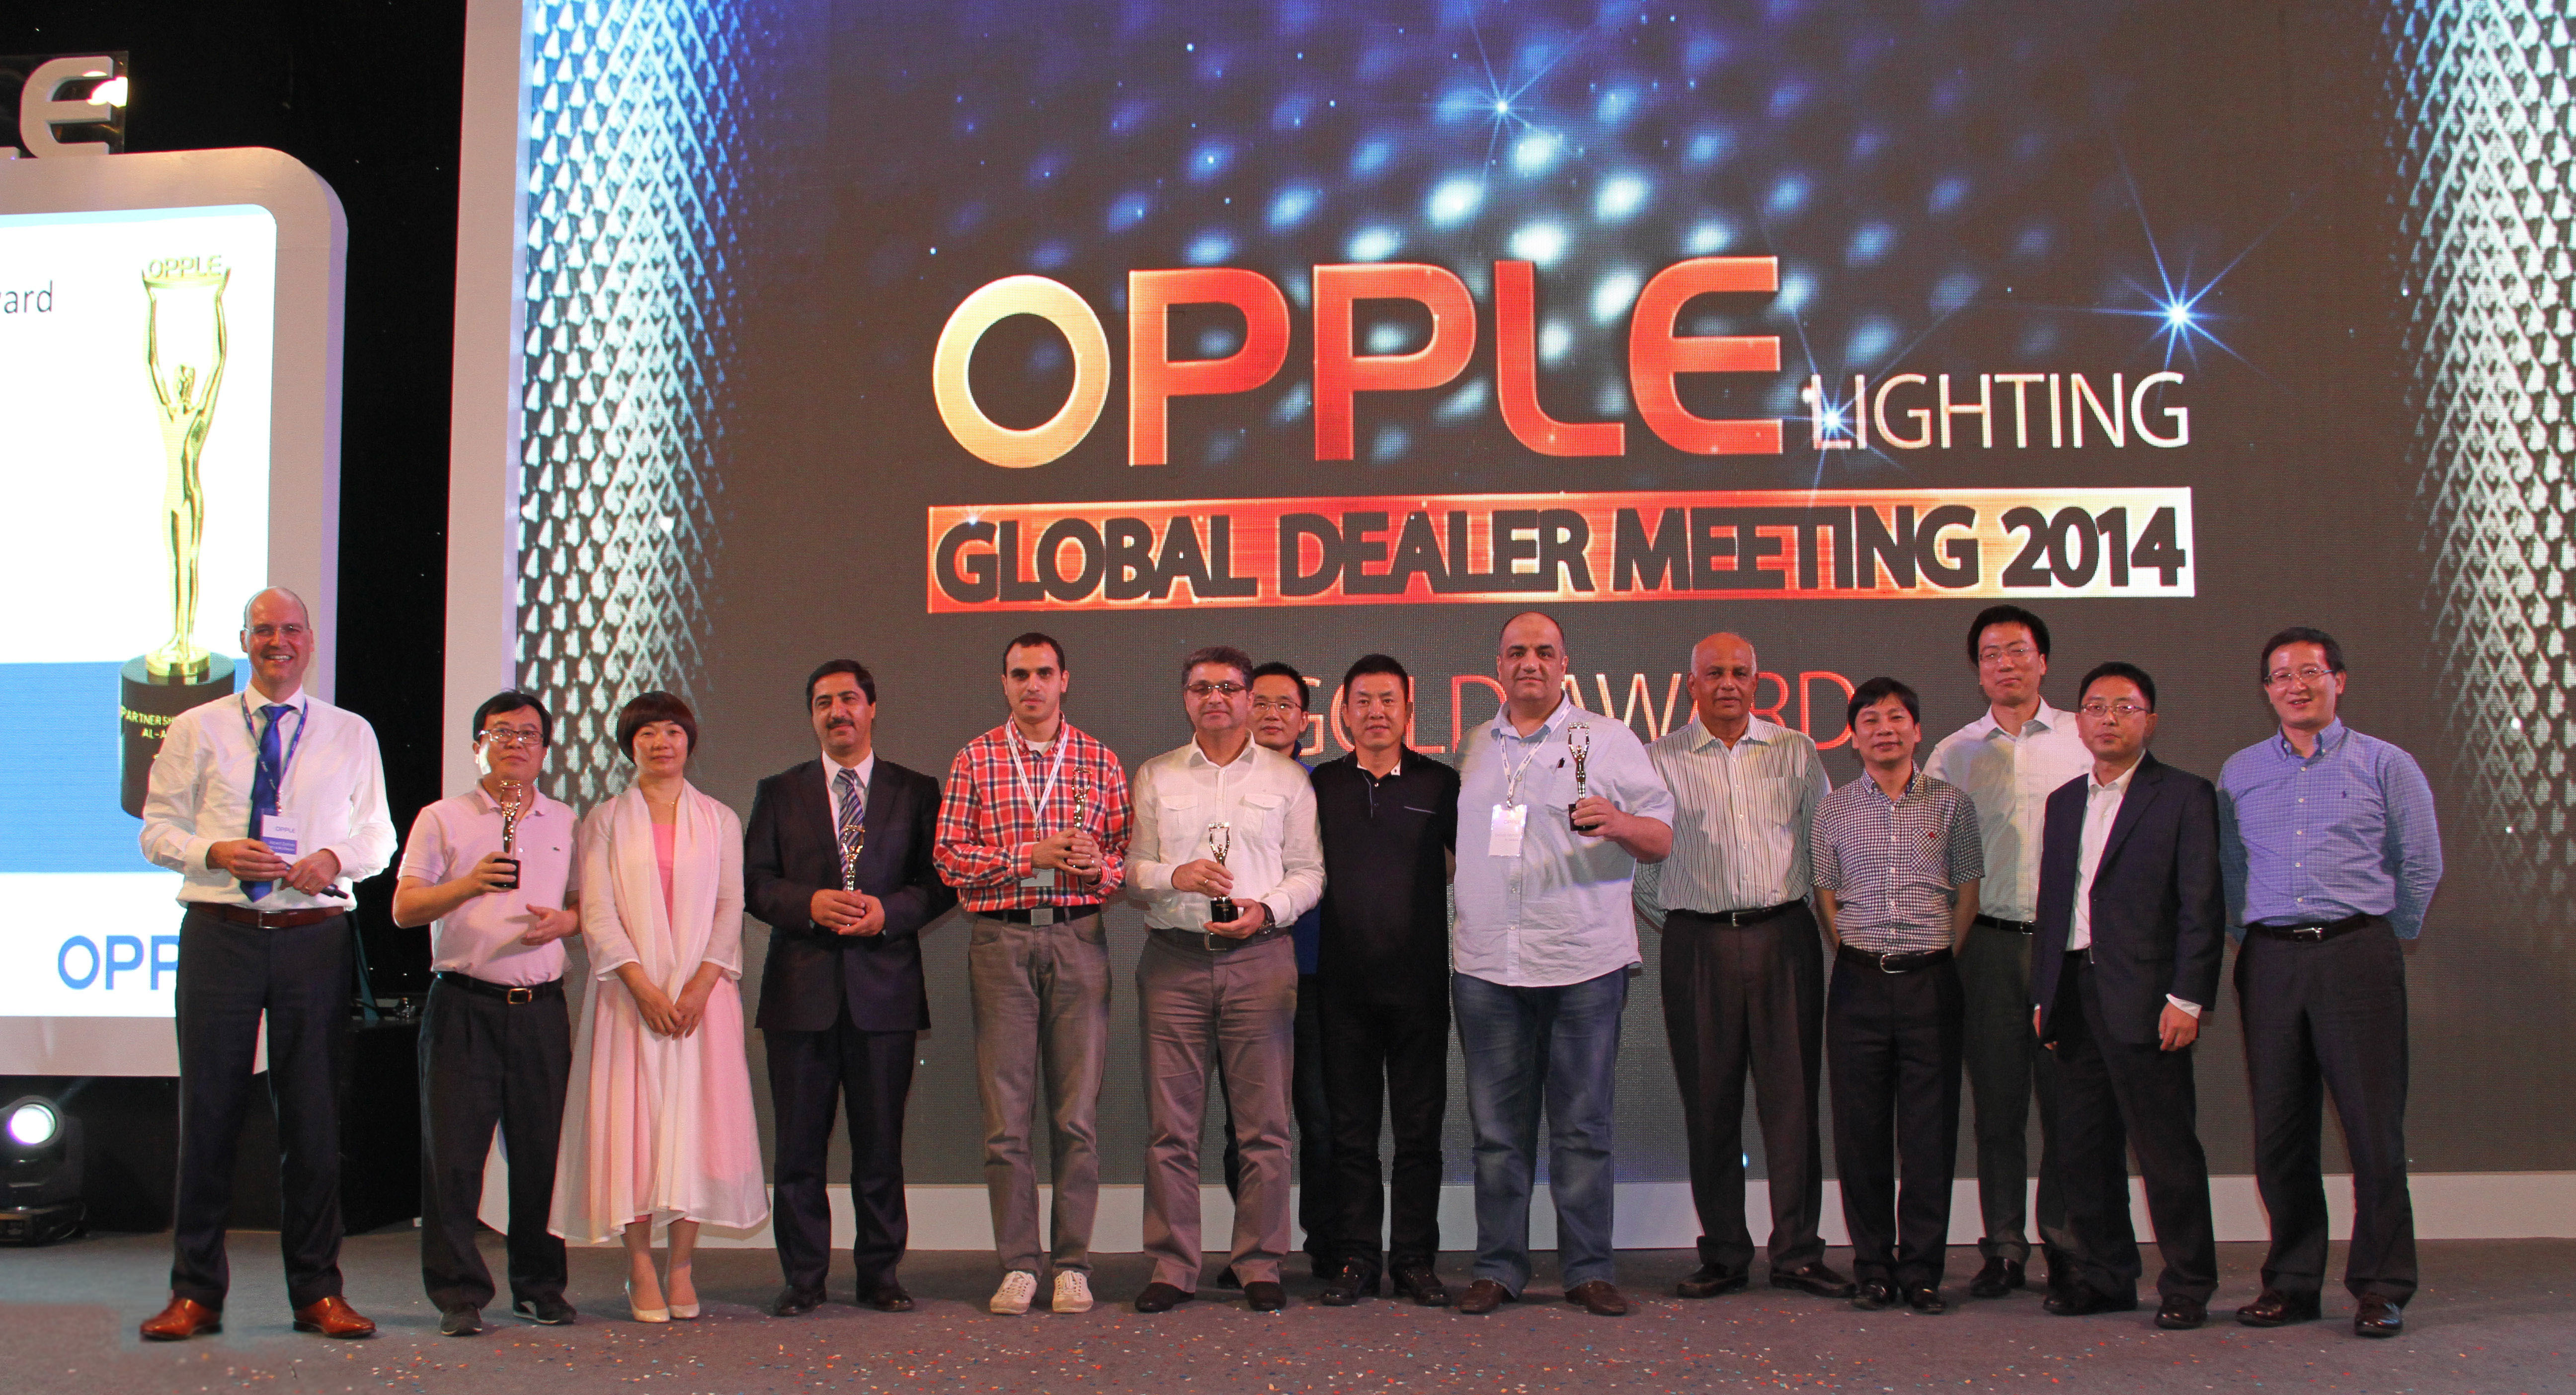 OPPLE BOARD MEMBERS AWARDED GOLD PRIZES TO BUSINESS PARTNERS IN DEALER MEETING, GUANGZHOU SHANGRI-LA HOTEL (Photo: Business Wire)